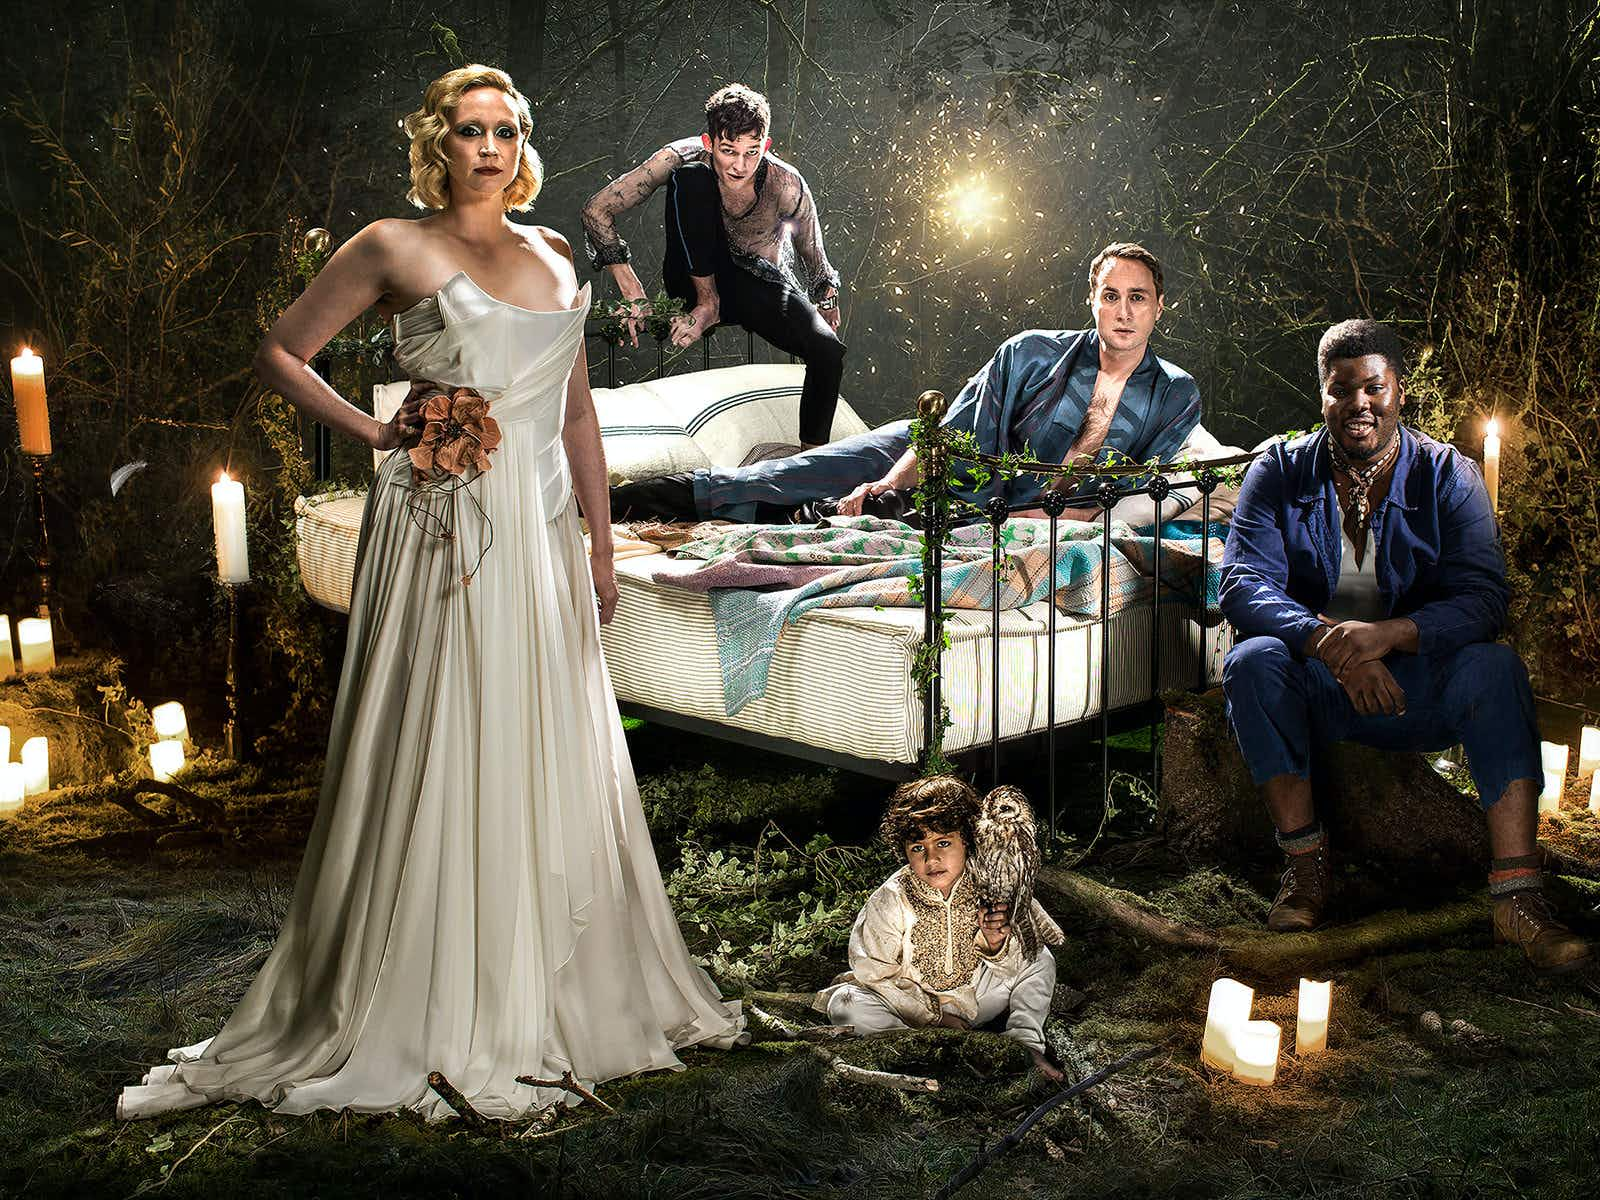 Celebrities West End Braodway - Gwendoline Christie leads the cast of A Midsummer Night's Dream at the Bridge Theatre, London. Gwendoline stands in front of the other cast members, posed around a wrought iron bed, in a floor-length, white silk gown © Perou